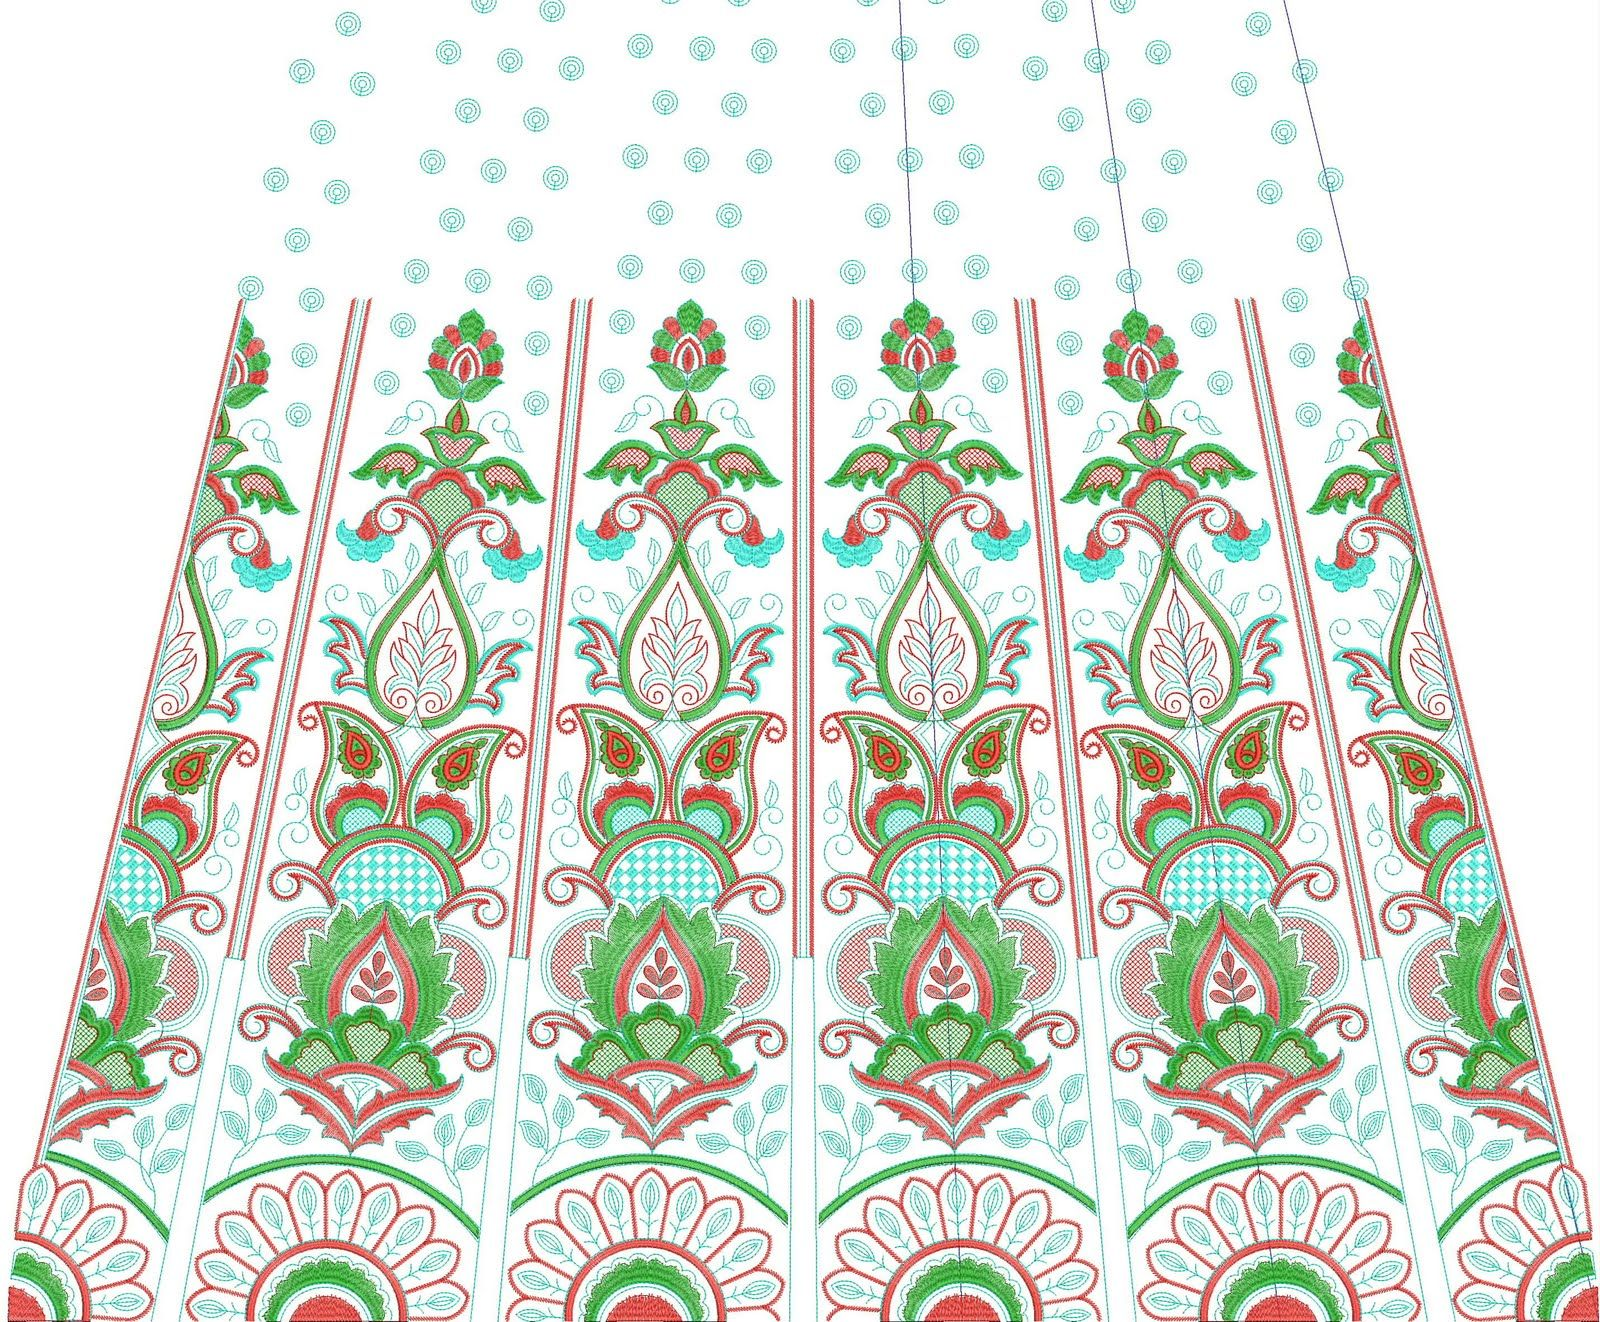 Free Pes Embroidery Designs Download Download Free